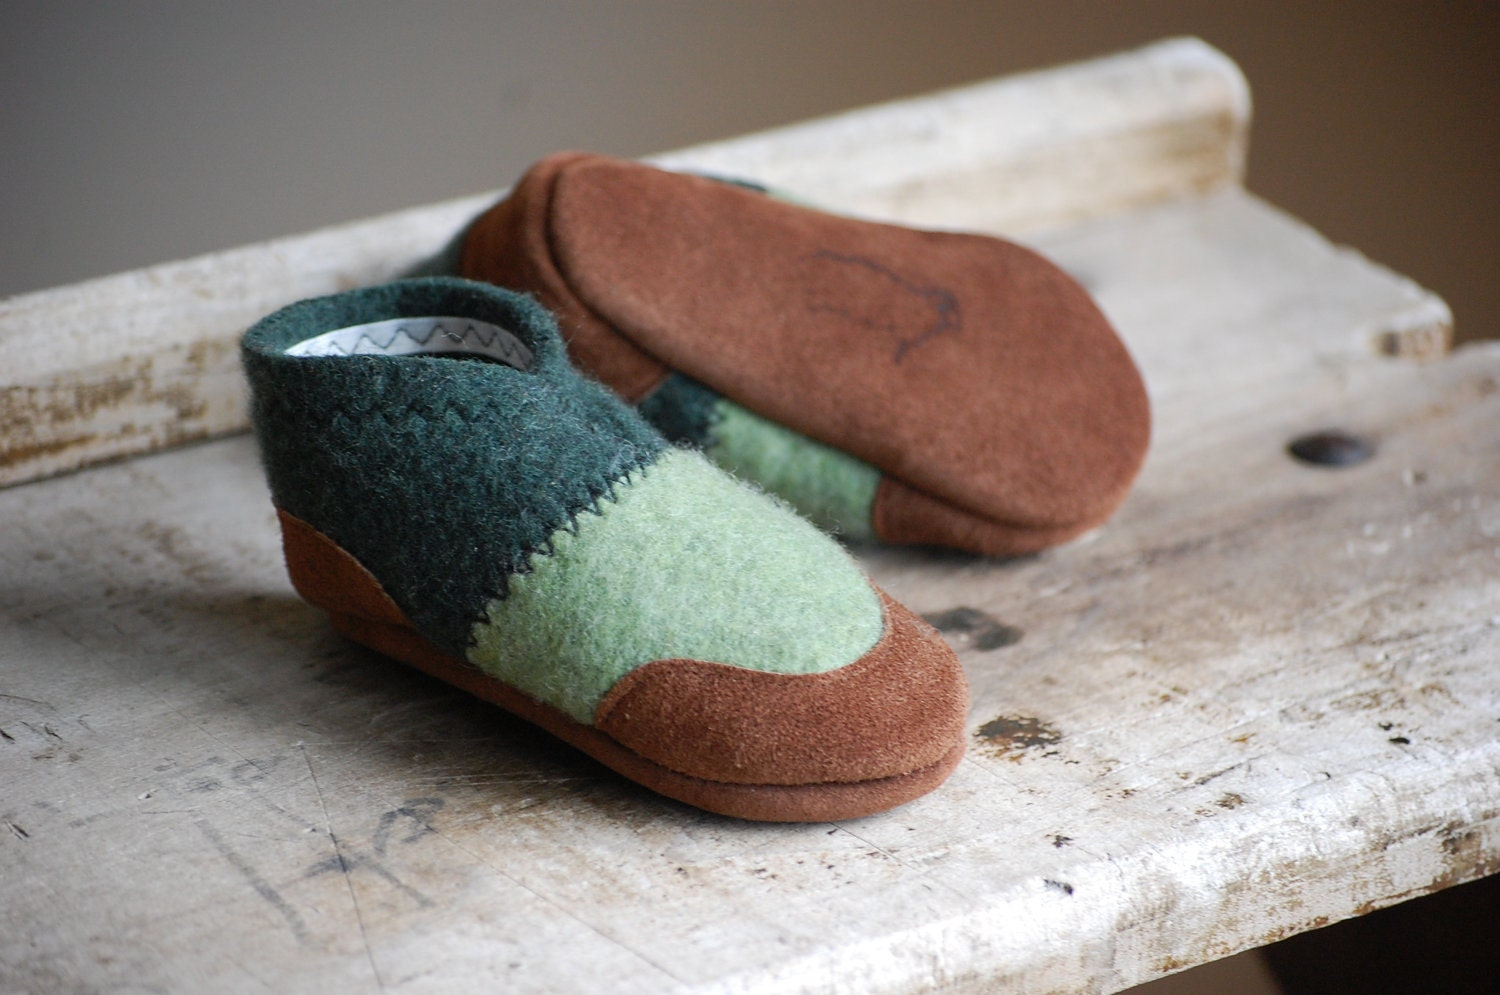 Baby Shoes, Toddler Slippers, Eco Friendly, size 0-12, 6-18, 12-24 months, Frog & Toad - WoolyBaby